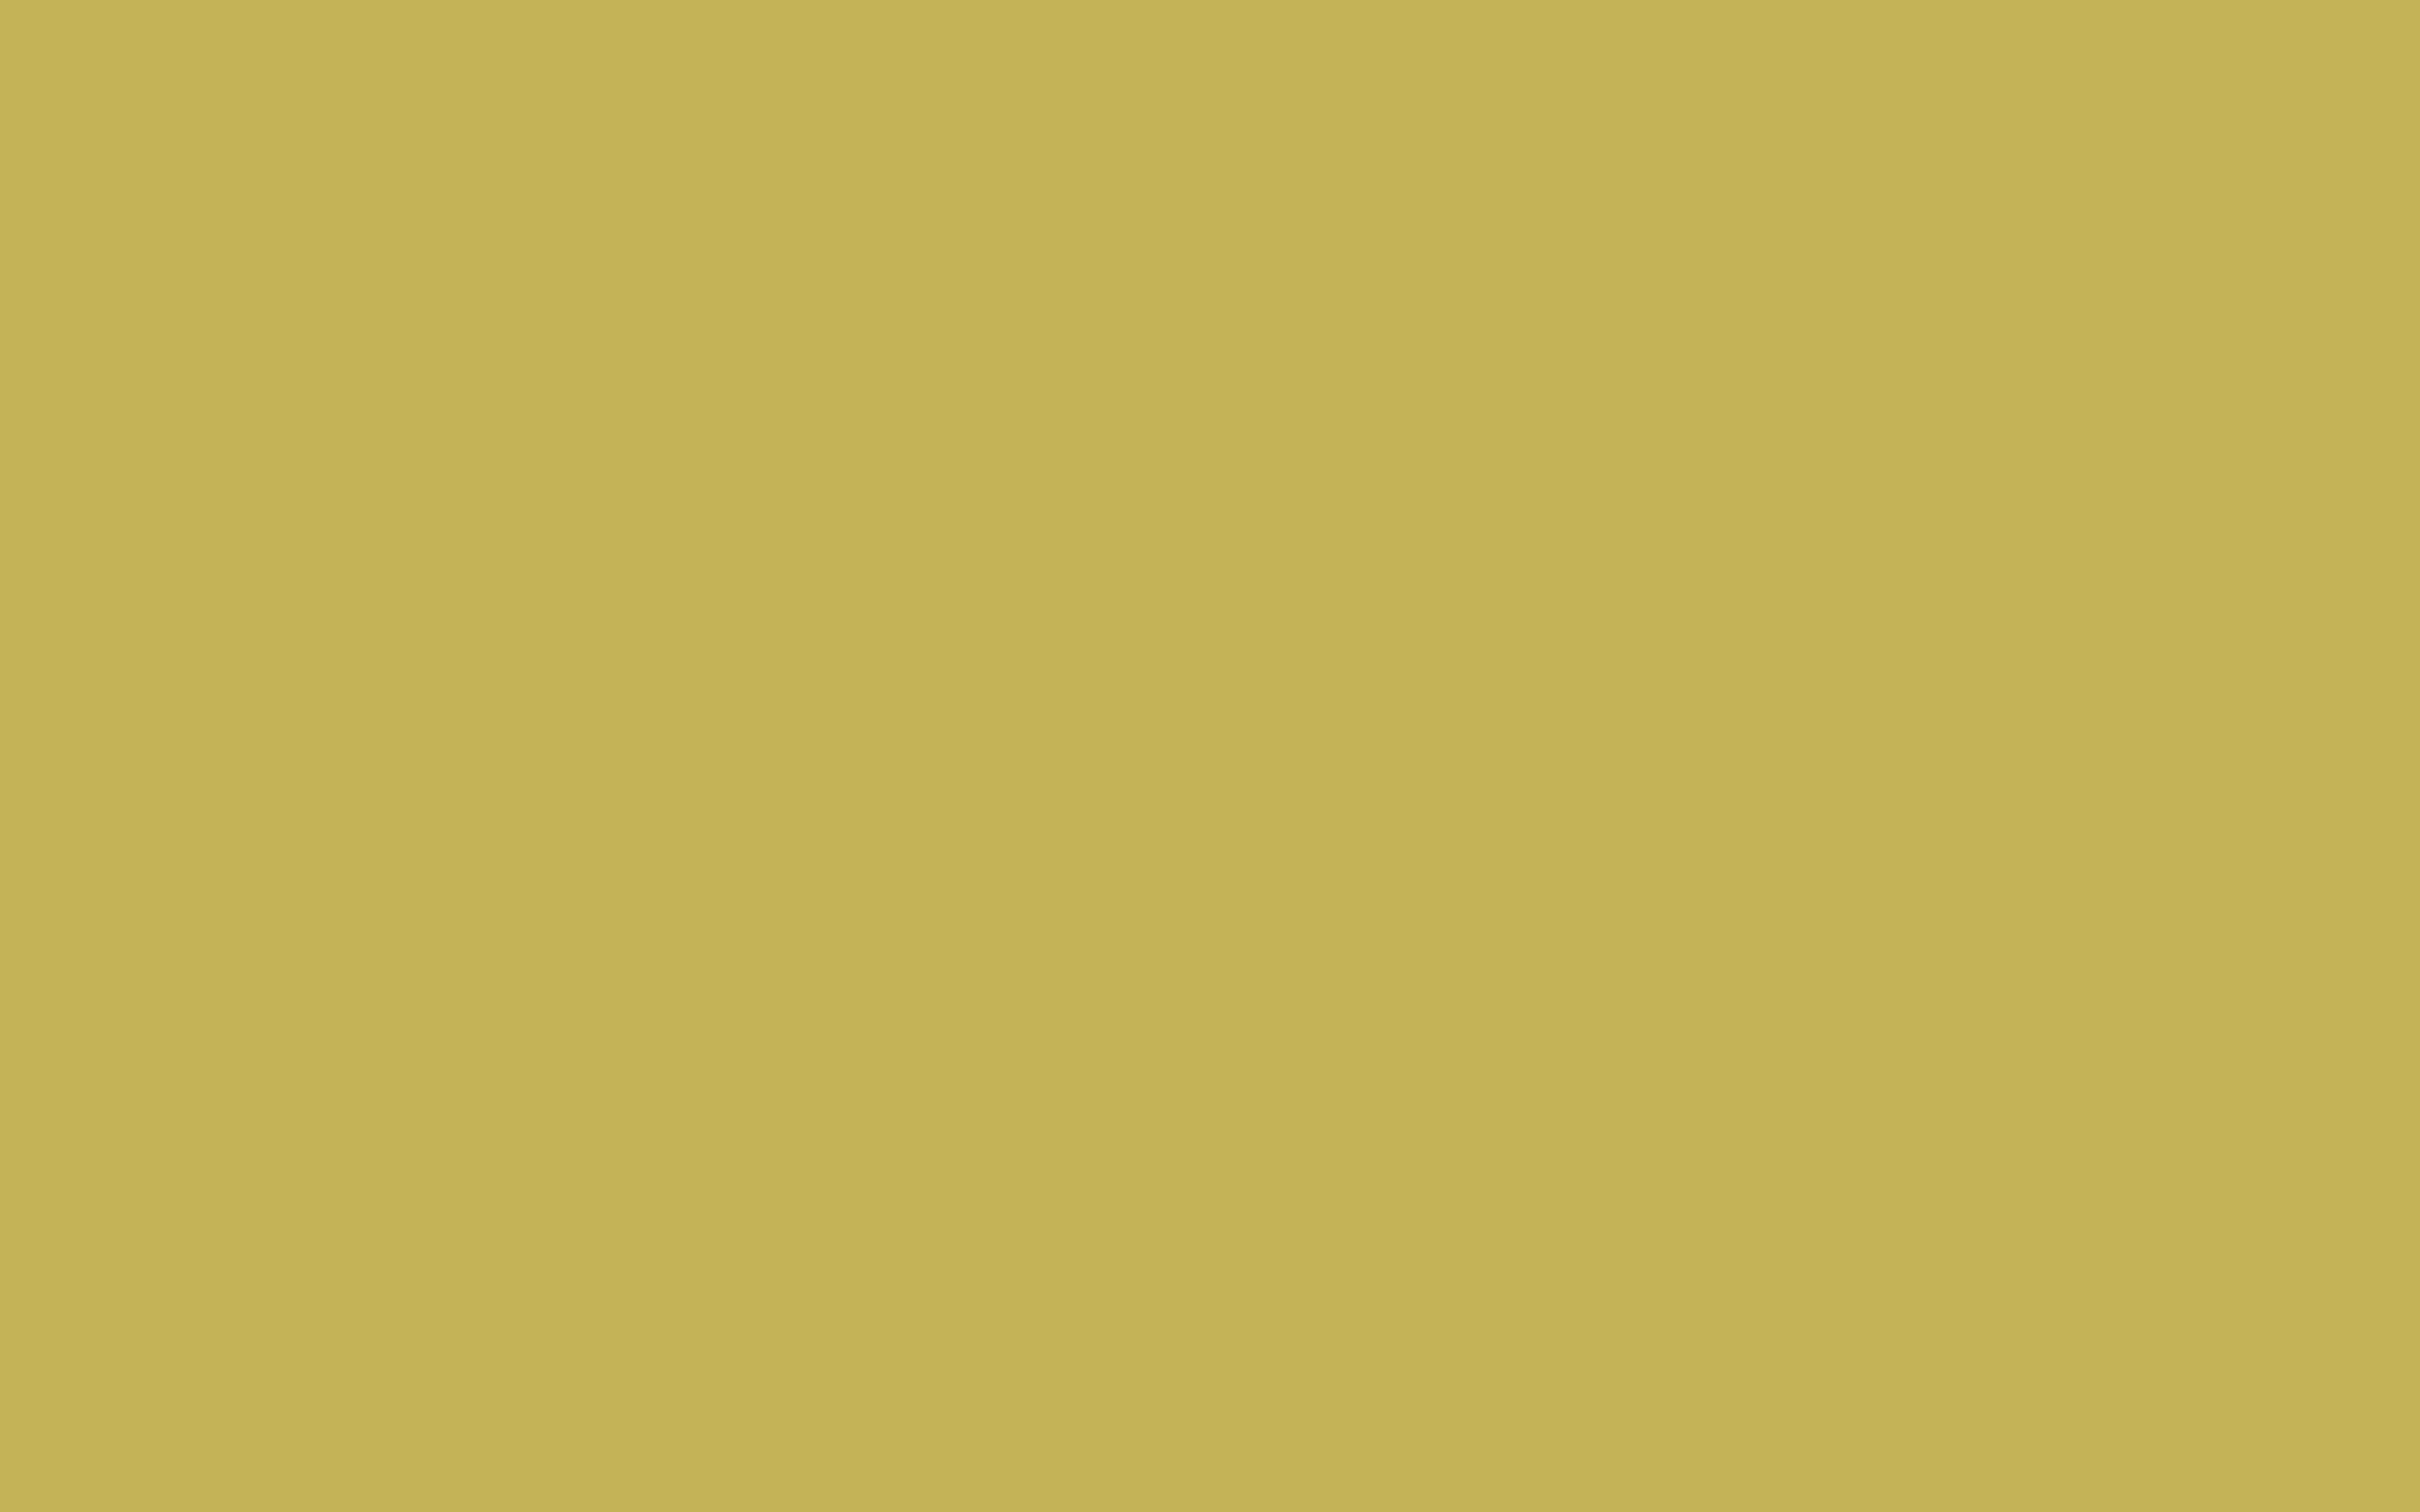 2560x1600 Vegas Gold Solid Color Background